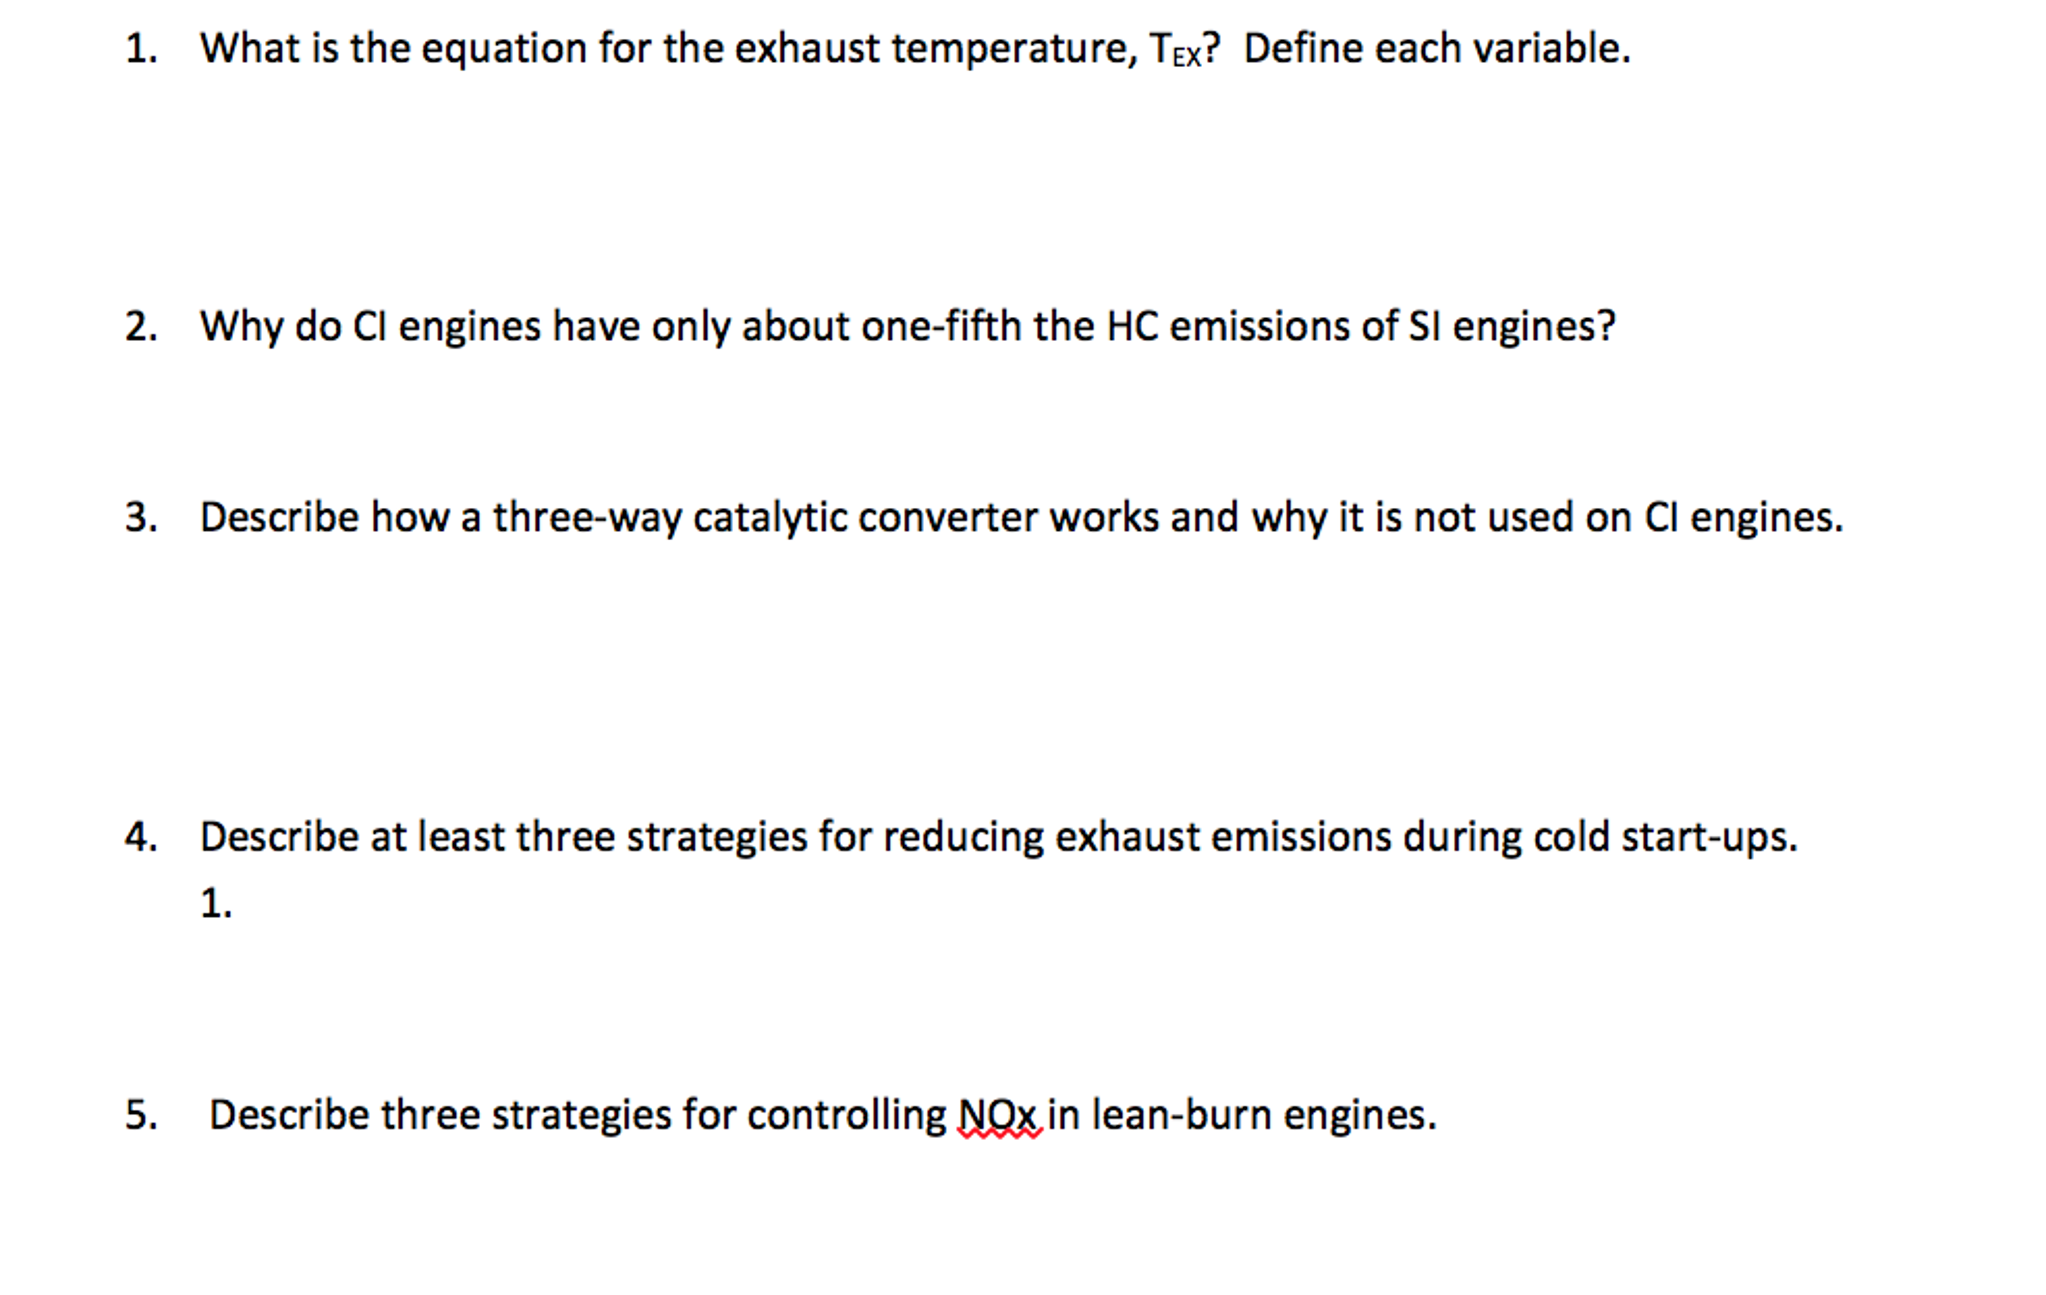 What Is The Equation For The Exhaust Temperature,     | Chegg com